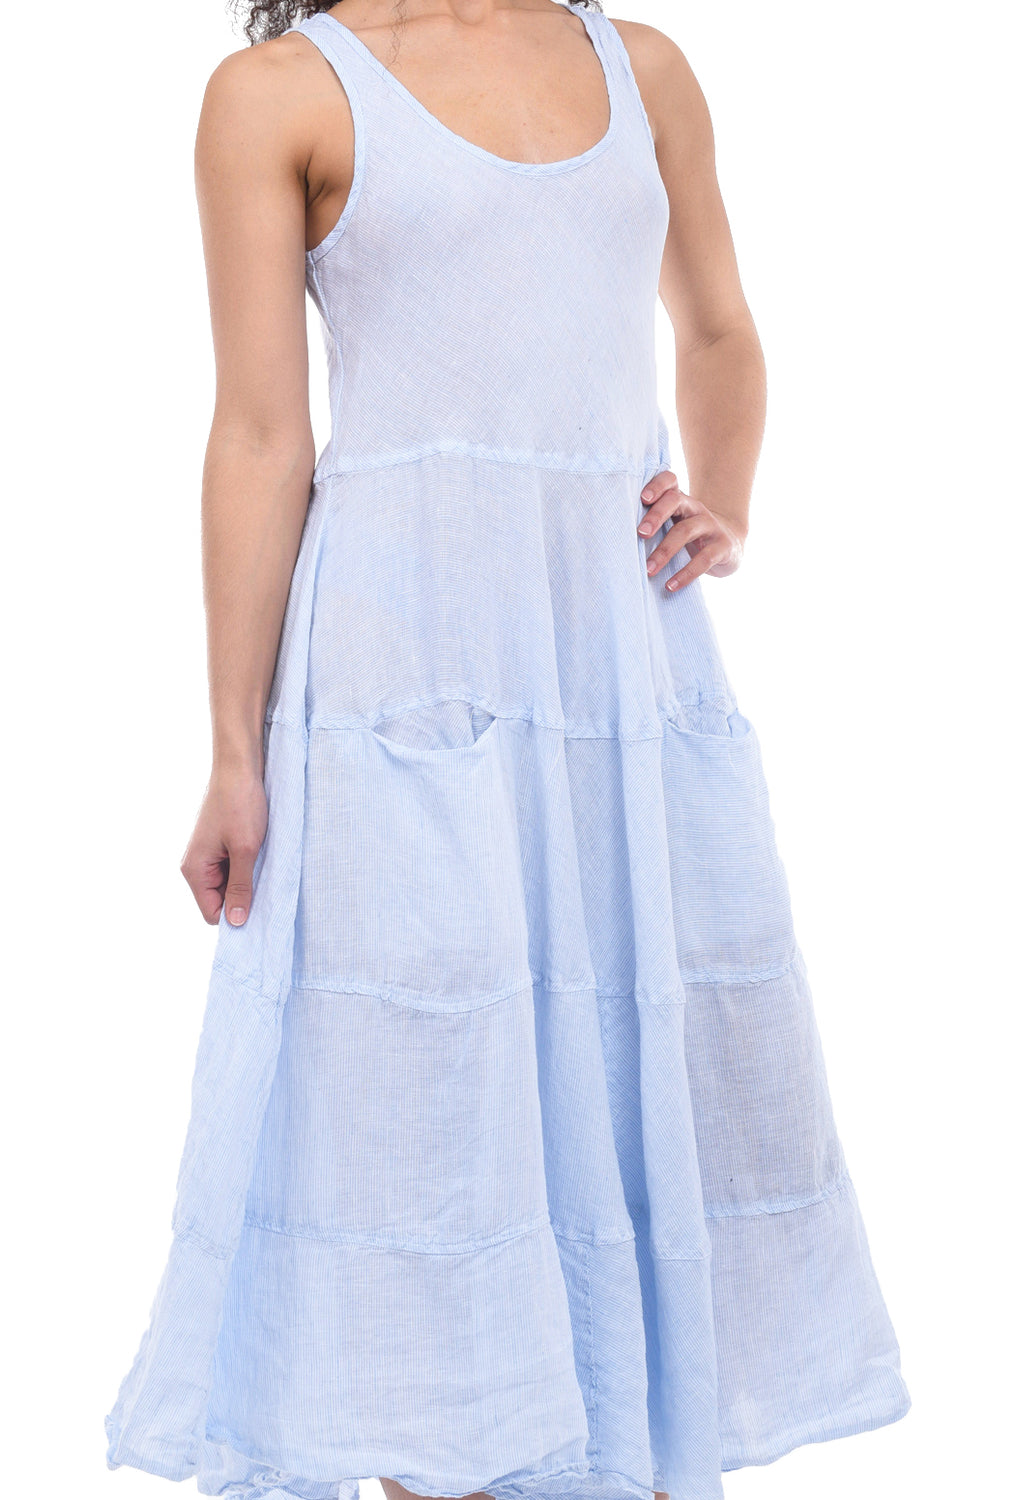 CP Shades Raffi Dress, Light Blue Pin